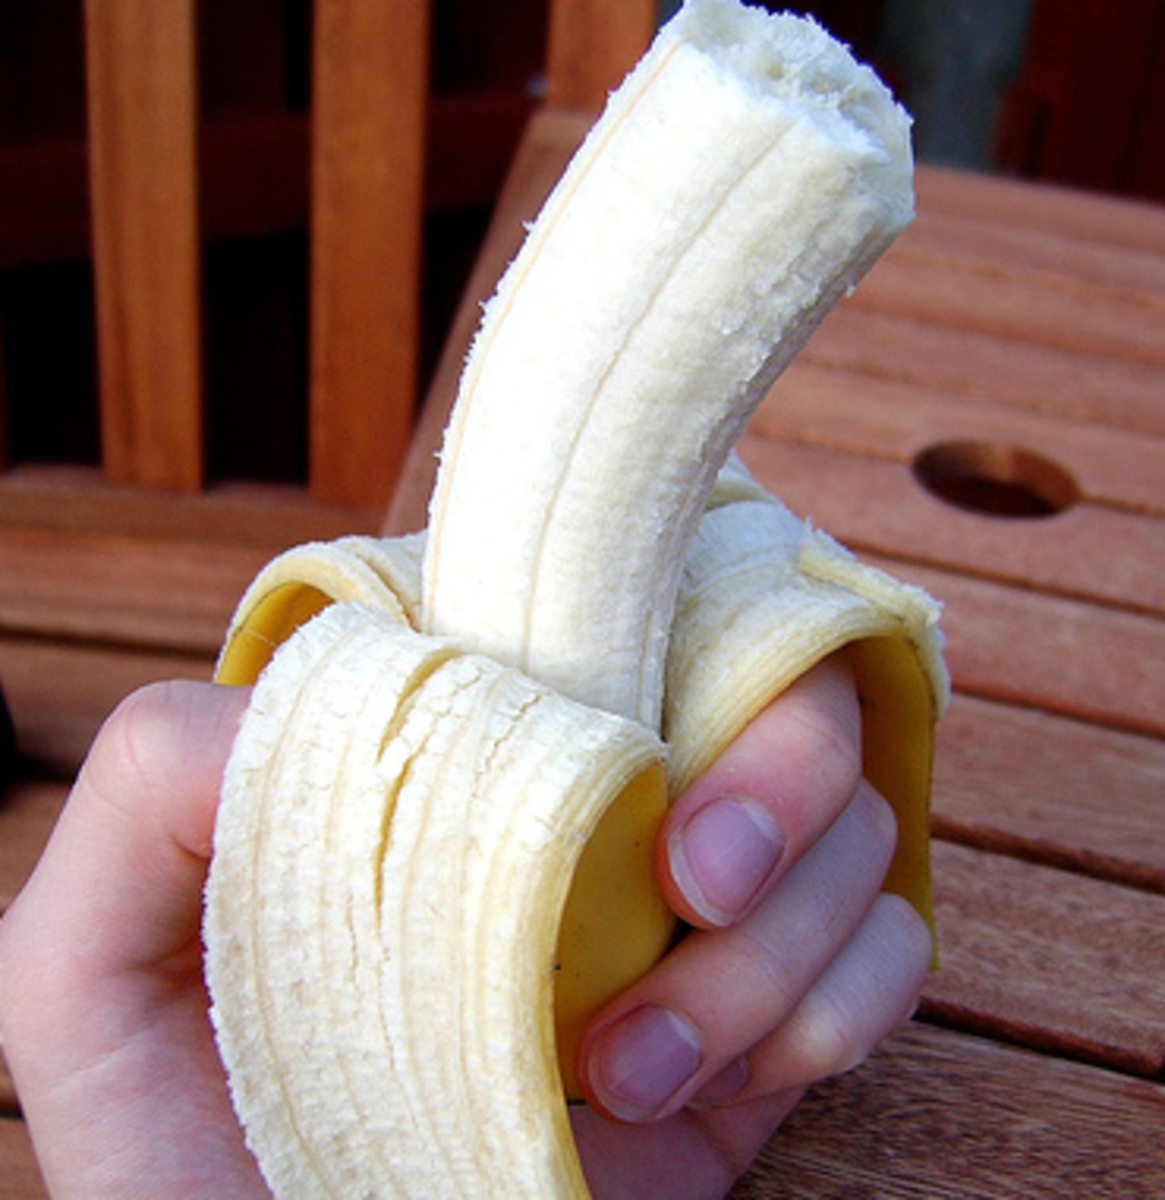 Peel and eat a banana